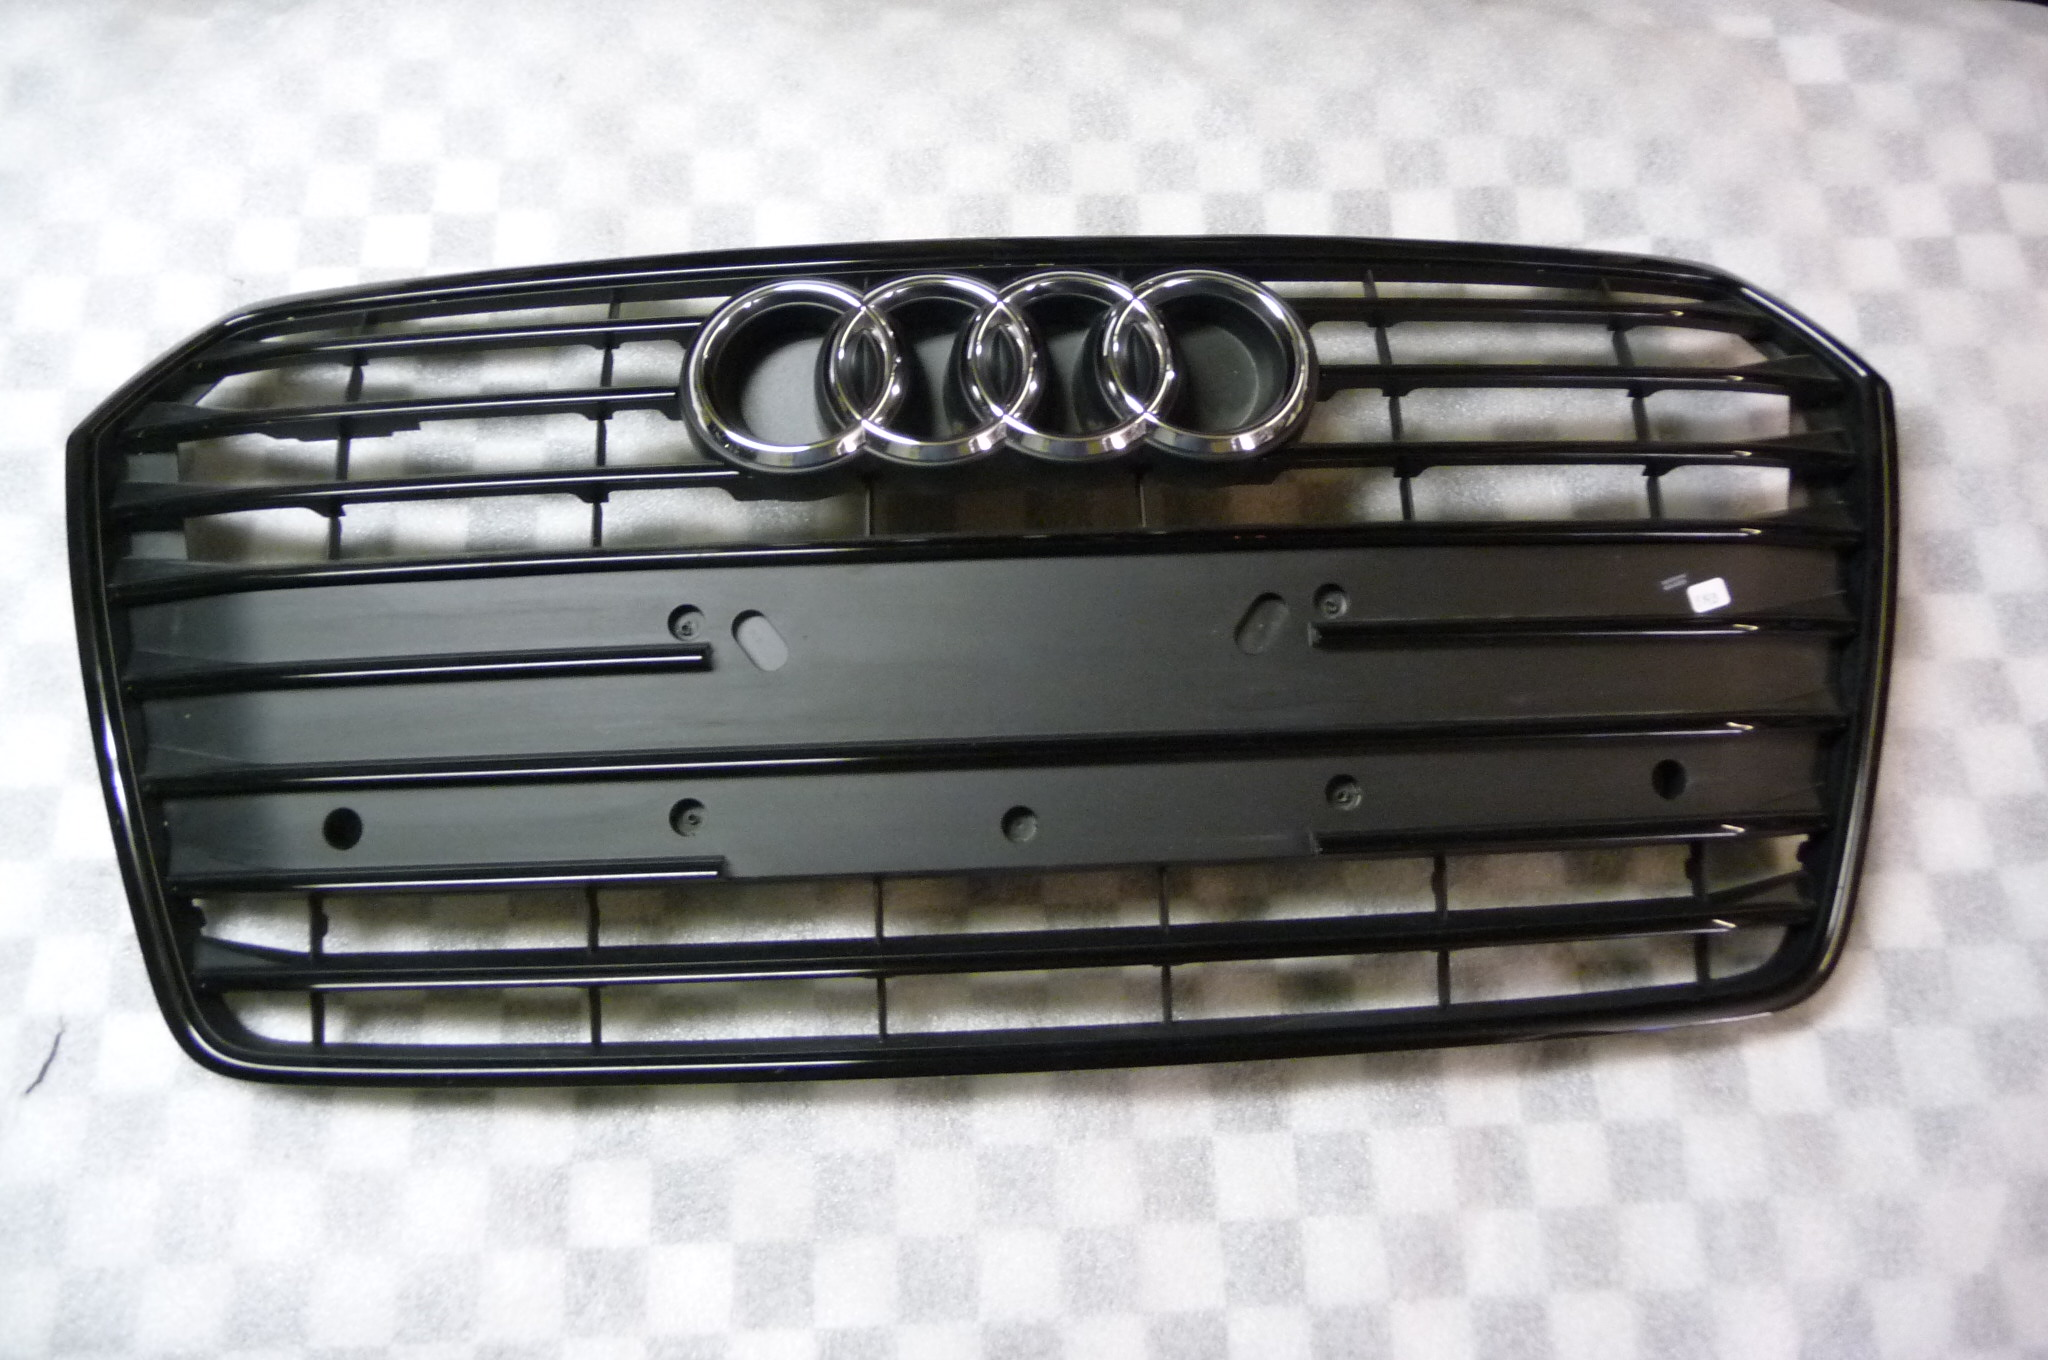 Audi A7 Front Glossy Black Radiator Grill Grille Assembly 4g8853651c